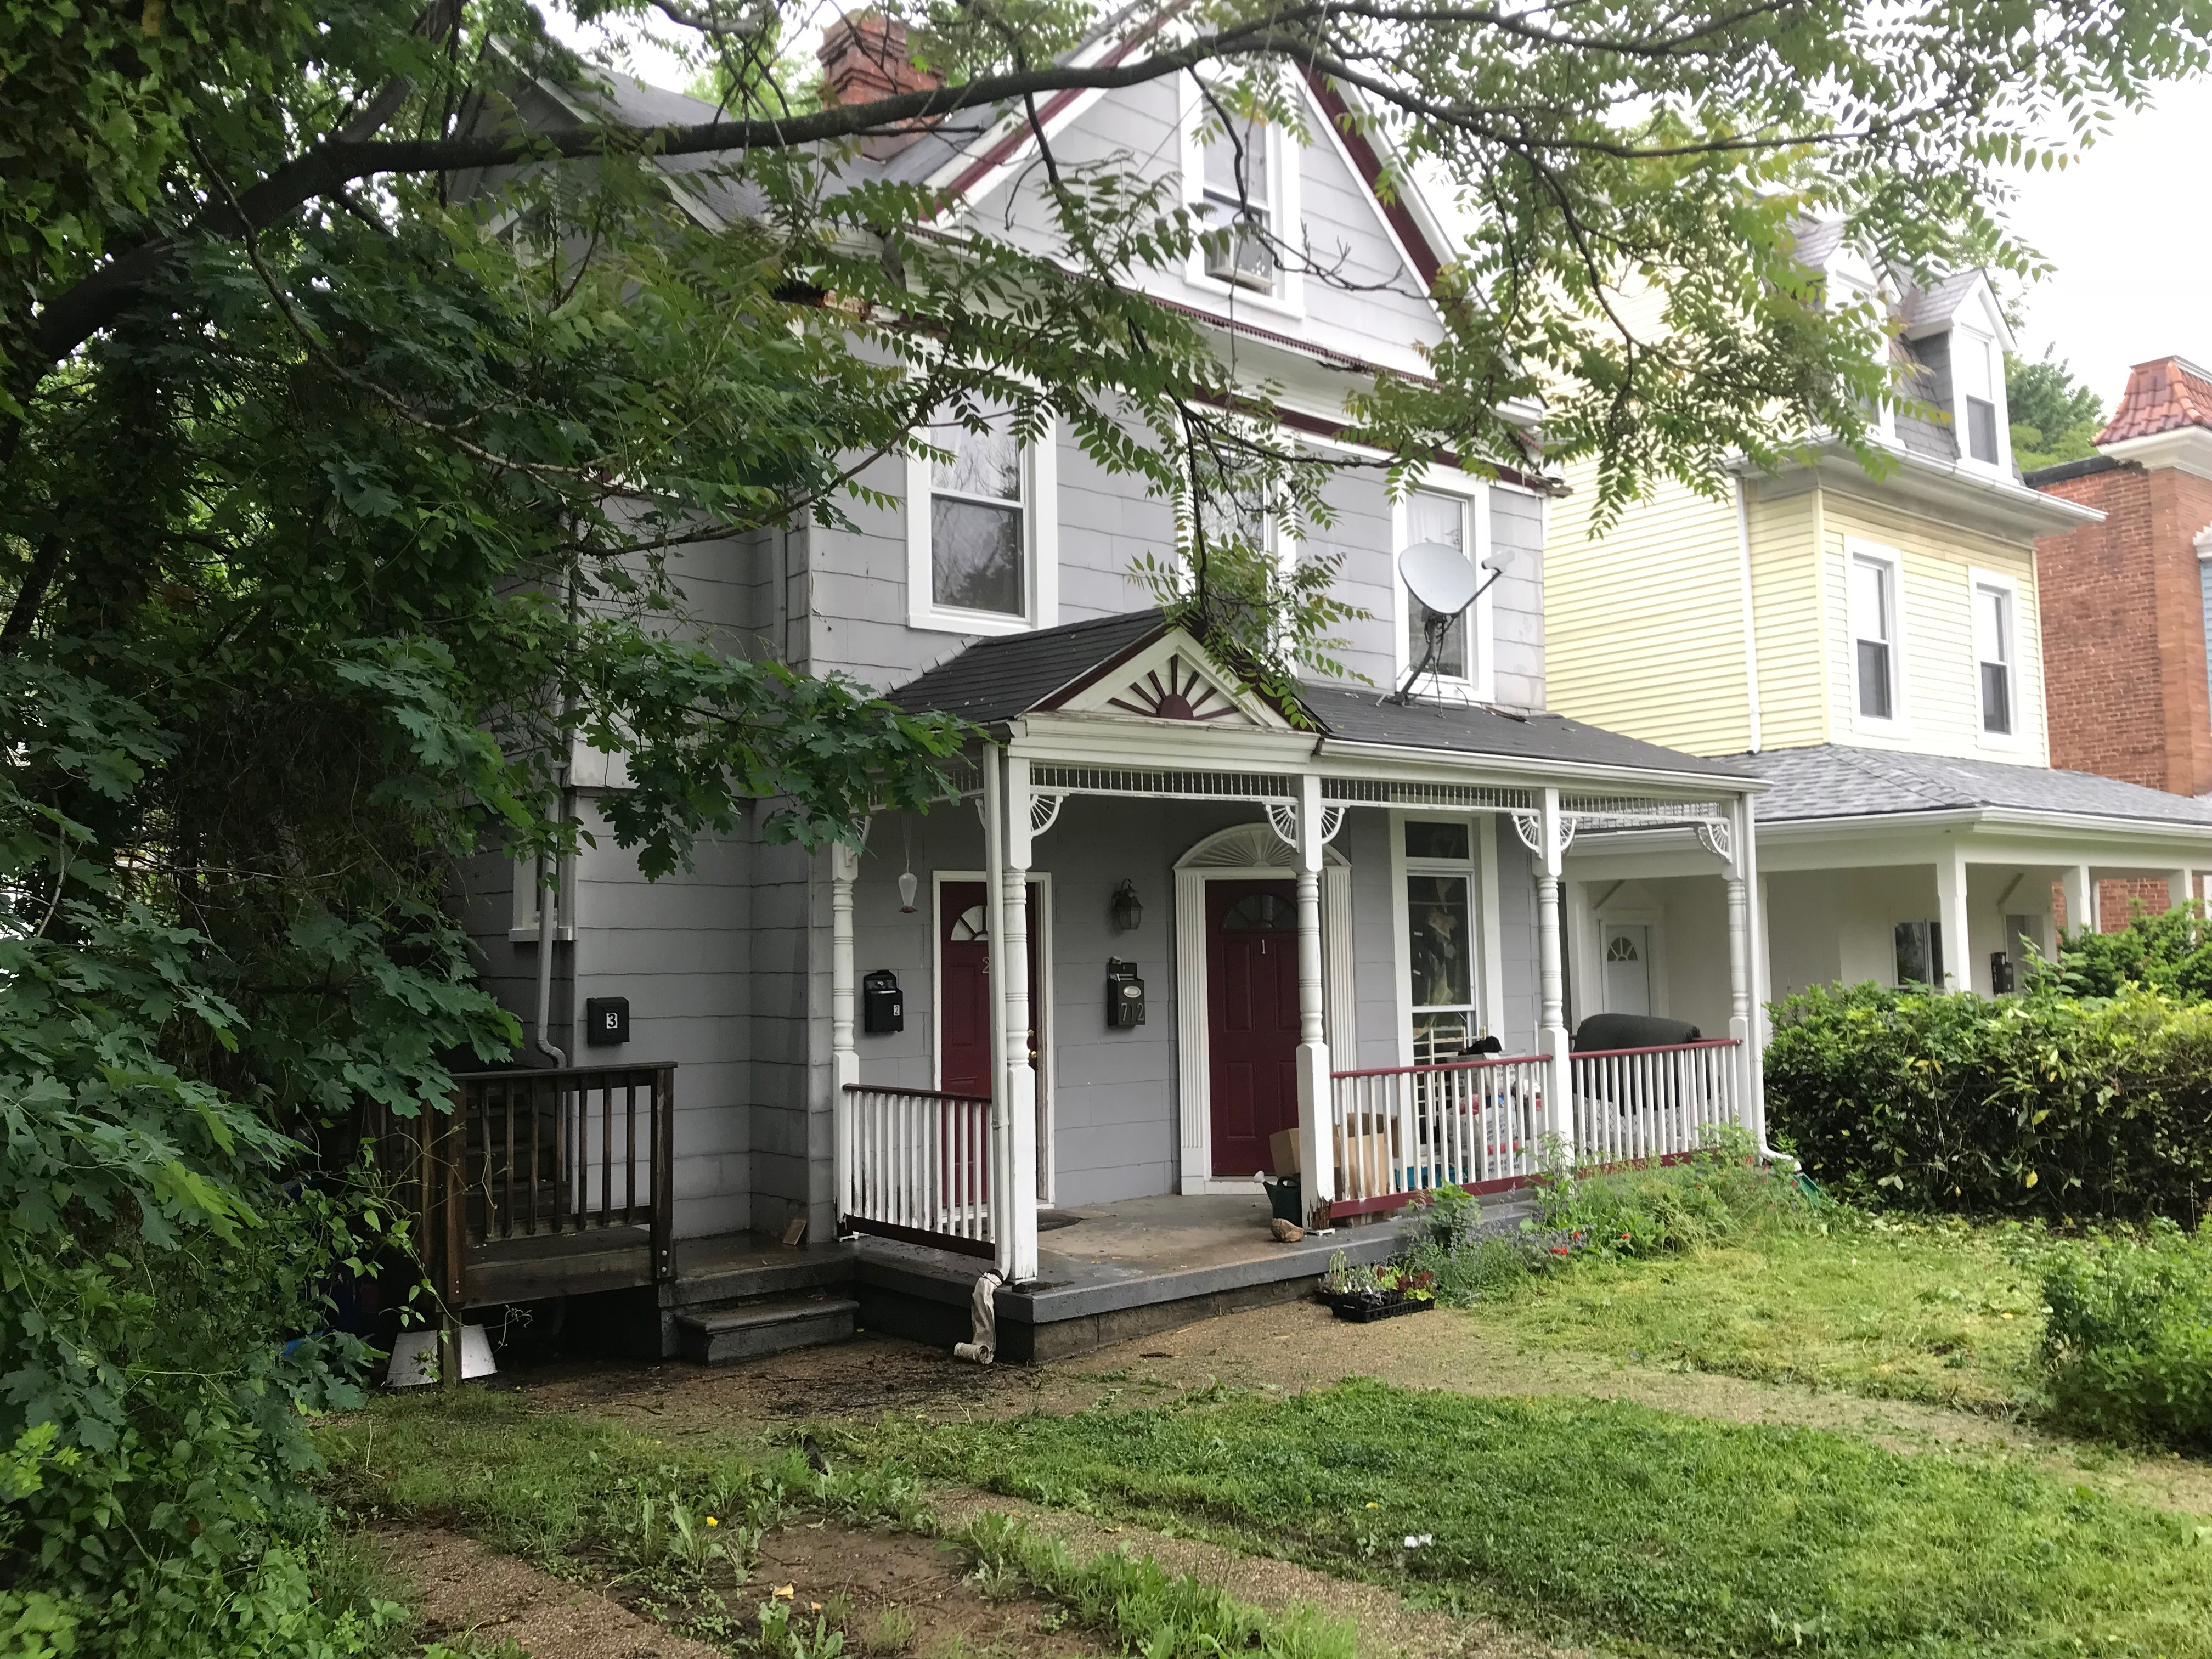 Detached multi-unit house, 712 gorsuch avenue, baltimore, md 21218 photo